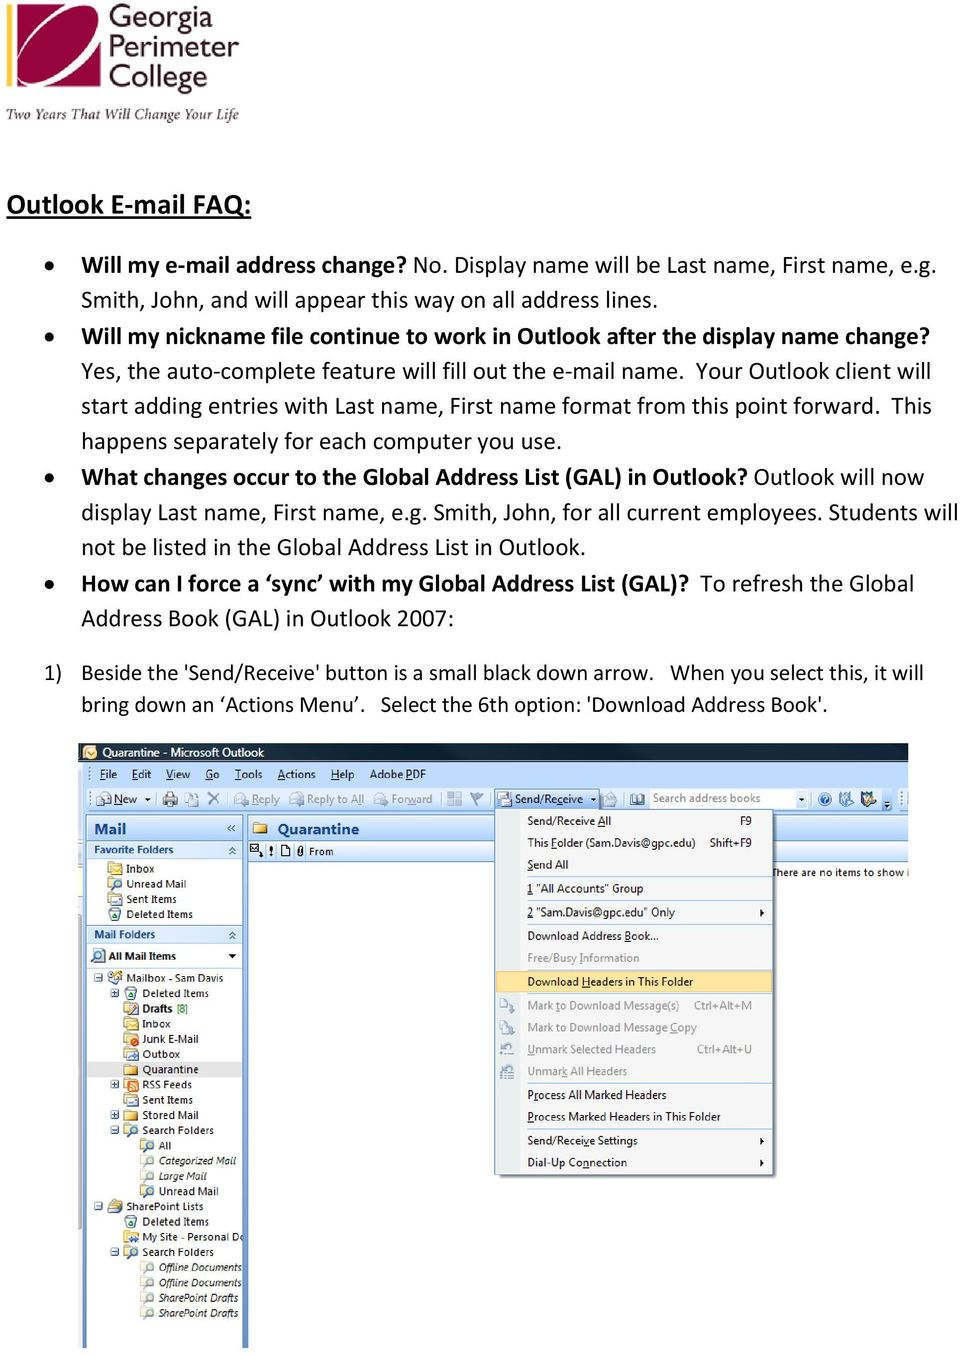 Your Outlook client will start adding entries with Last name, First name format from this point forward. This happens separately for each computer you use.